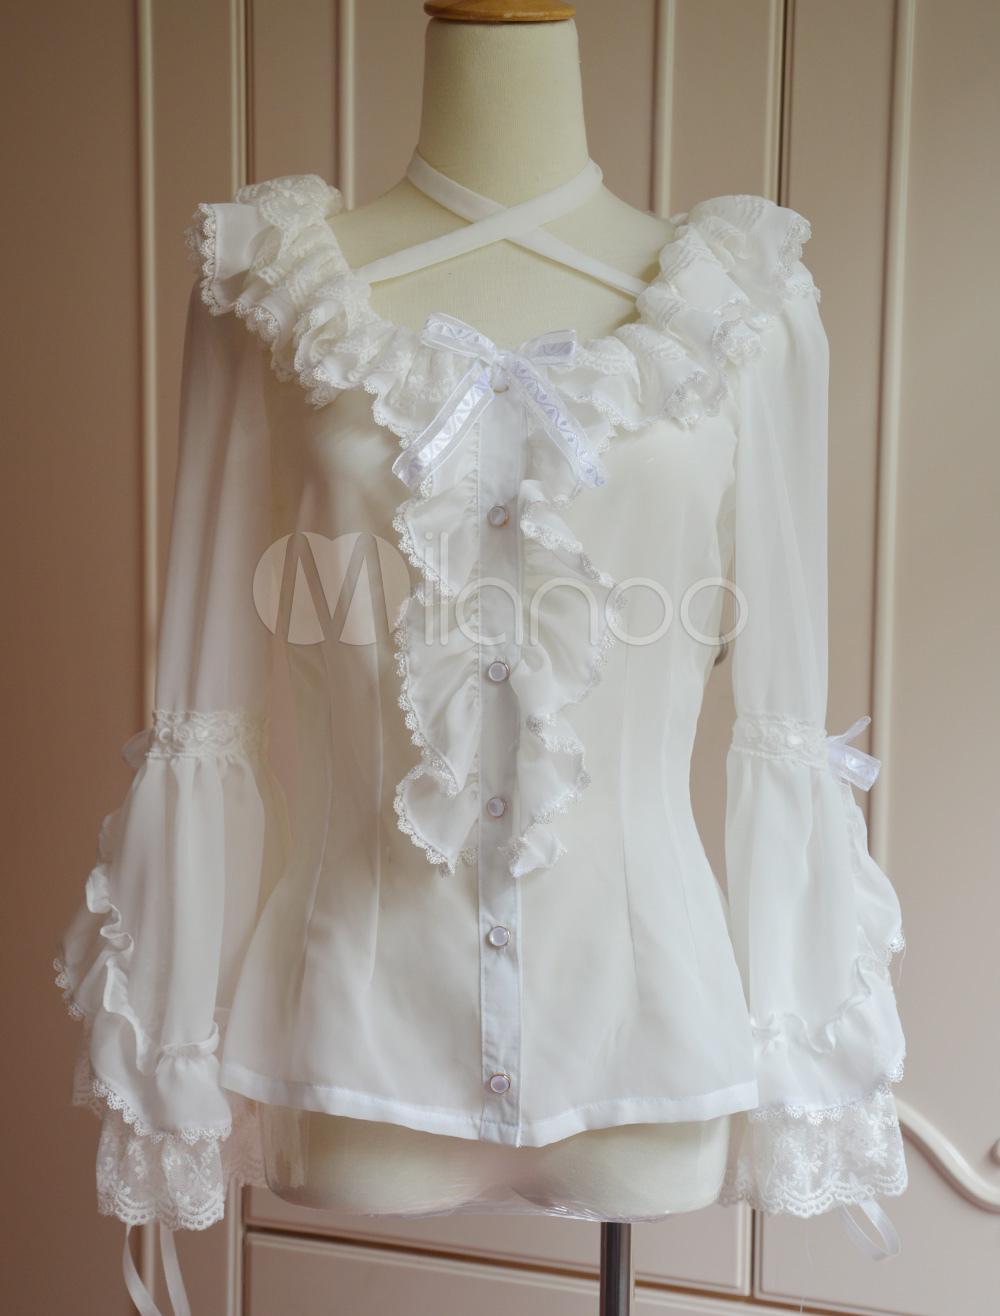 Buy Pure White Chiffon Lolita Blouse Long Hime Sleeves Neck Straps Lace Trim Ruffles for $53.99 in Milanoo store